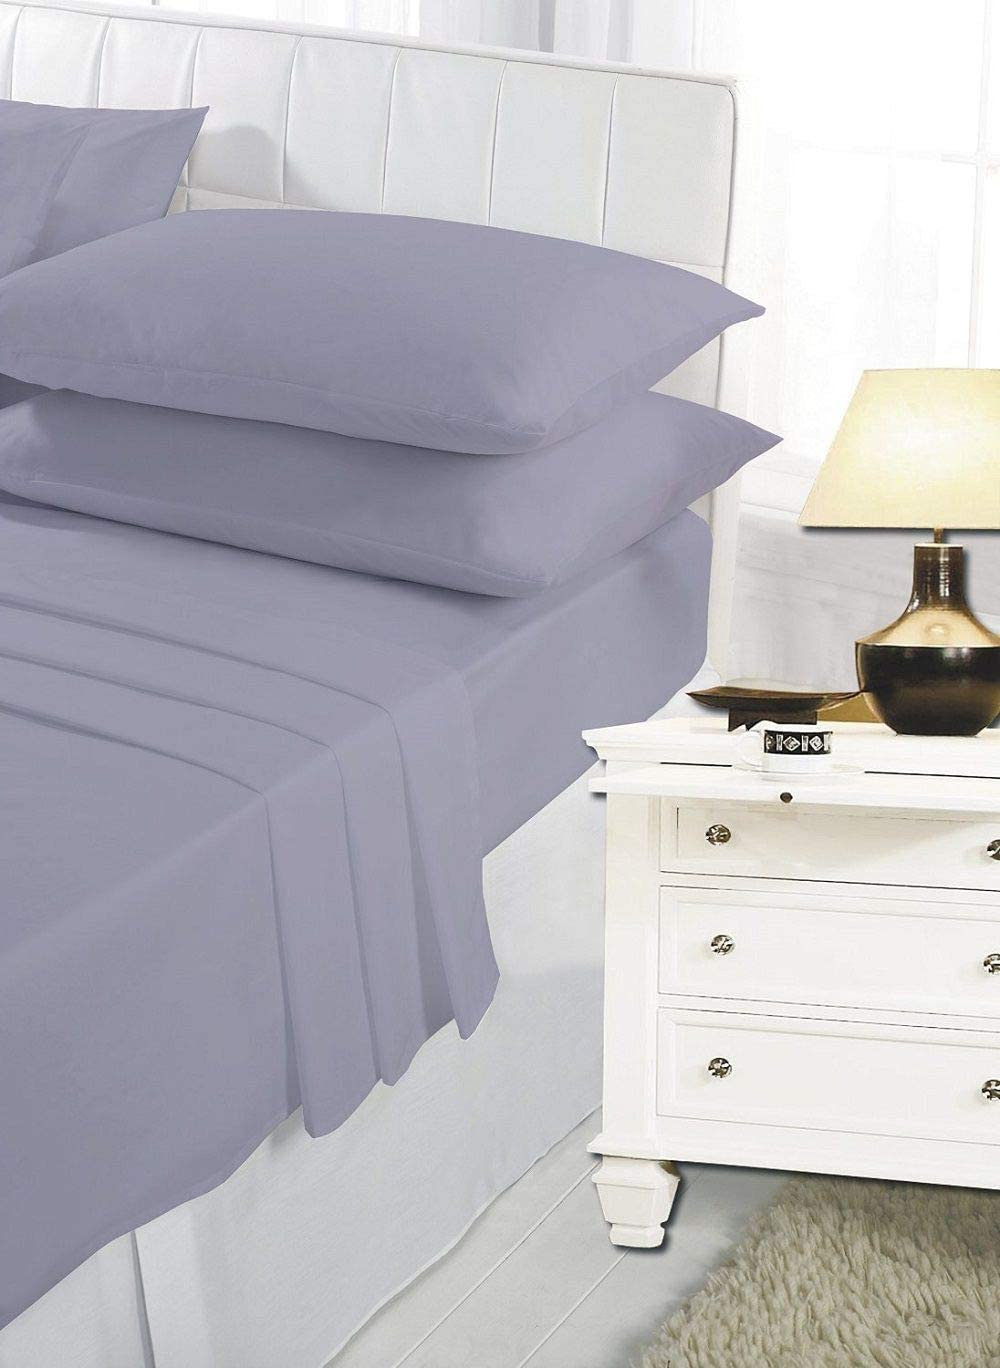 4FT SmallDouble Sheet Navy Small Double Bed Easy Care Polycotton 4FT Bed Sheets